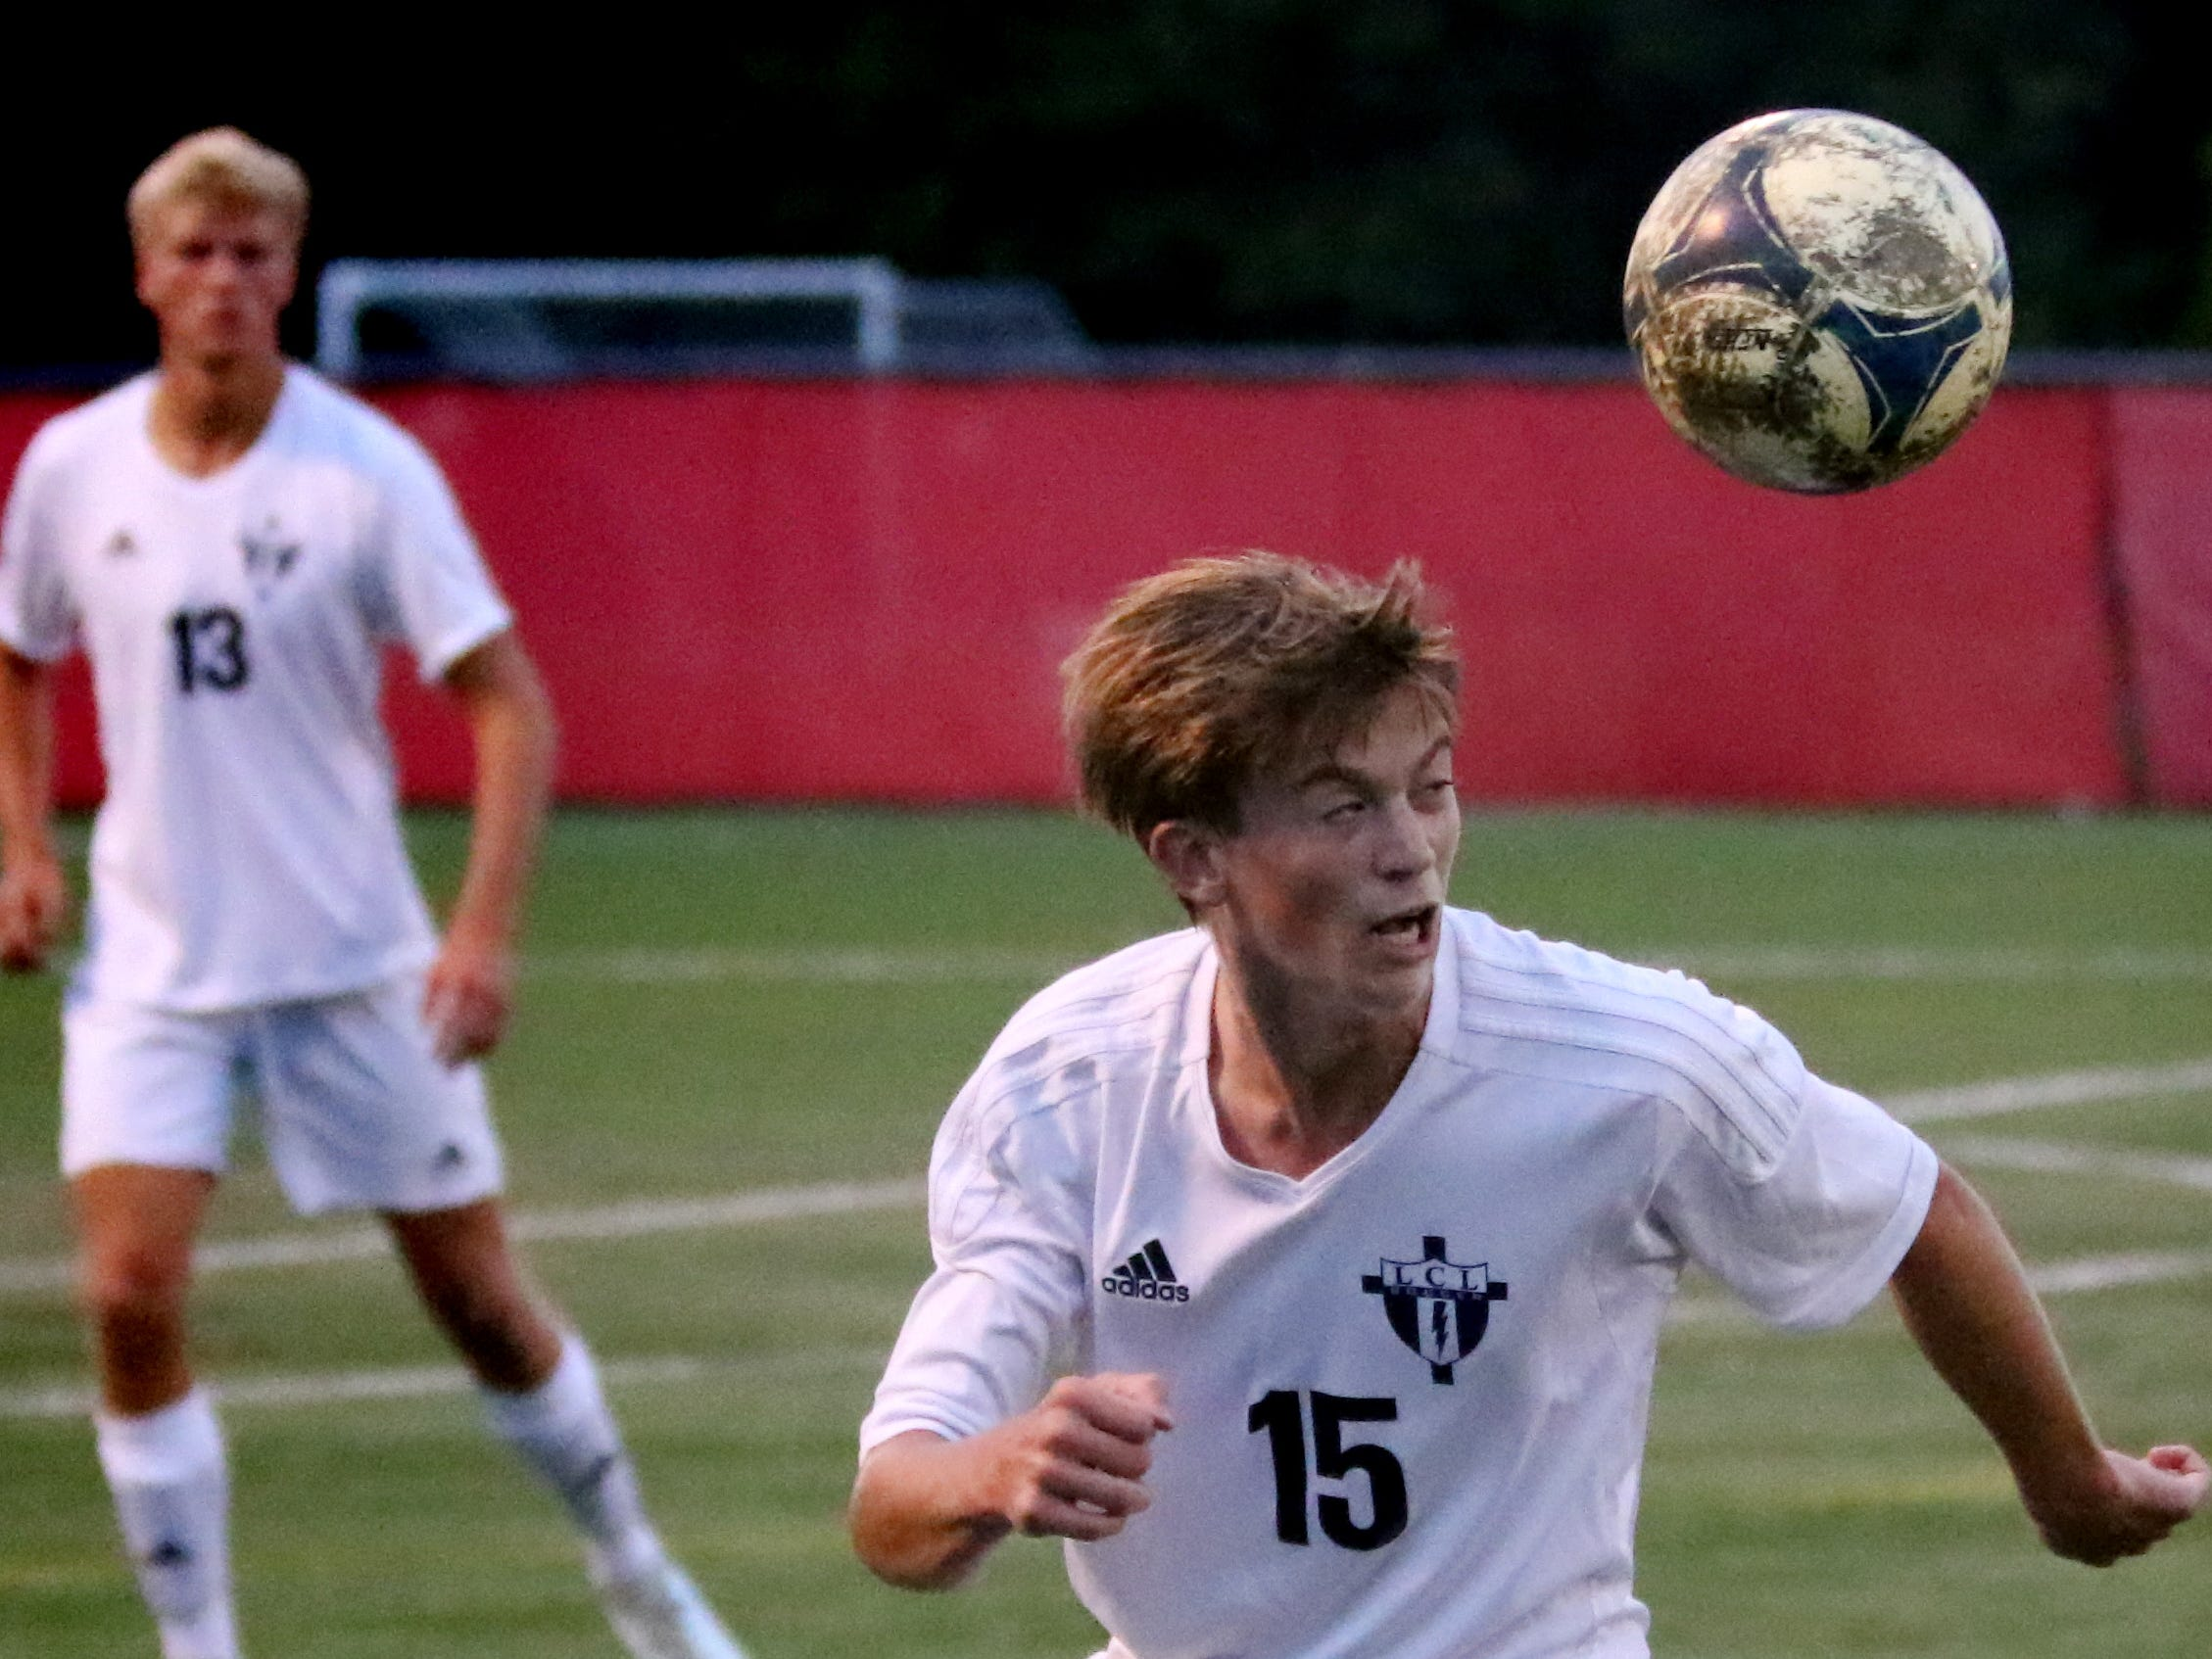 Lake Country Lutheran's Garrett Lueth heads the ball against Nicolet at Uihlein Soccer Park on Aug. 21.